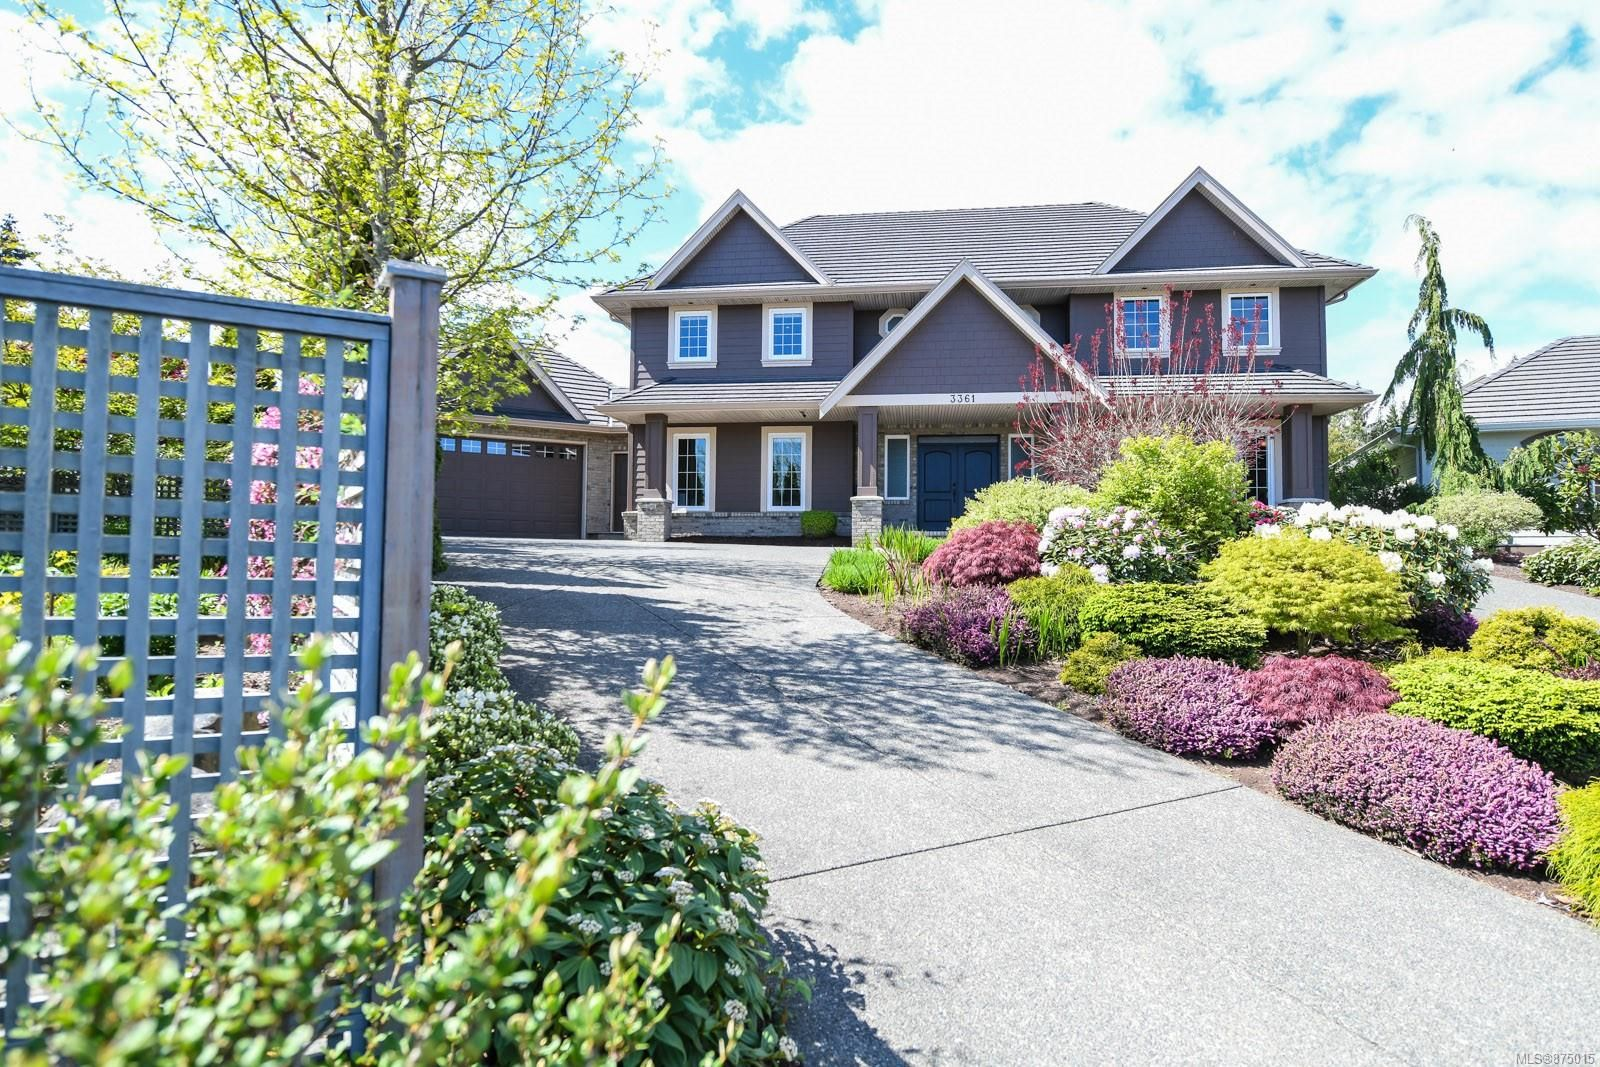 Main Photo: 3361 York Pl in : CV Crown Isle House for sale (Comox Valley)  : MLS®# 875015